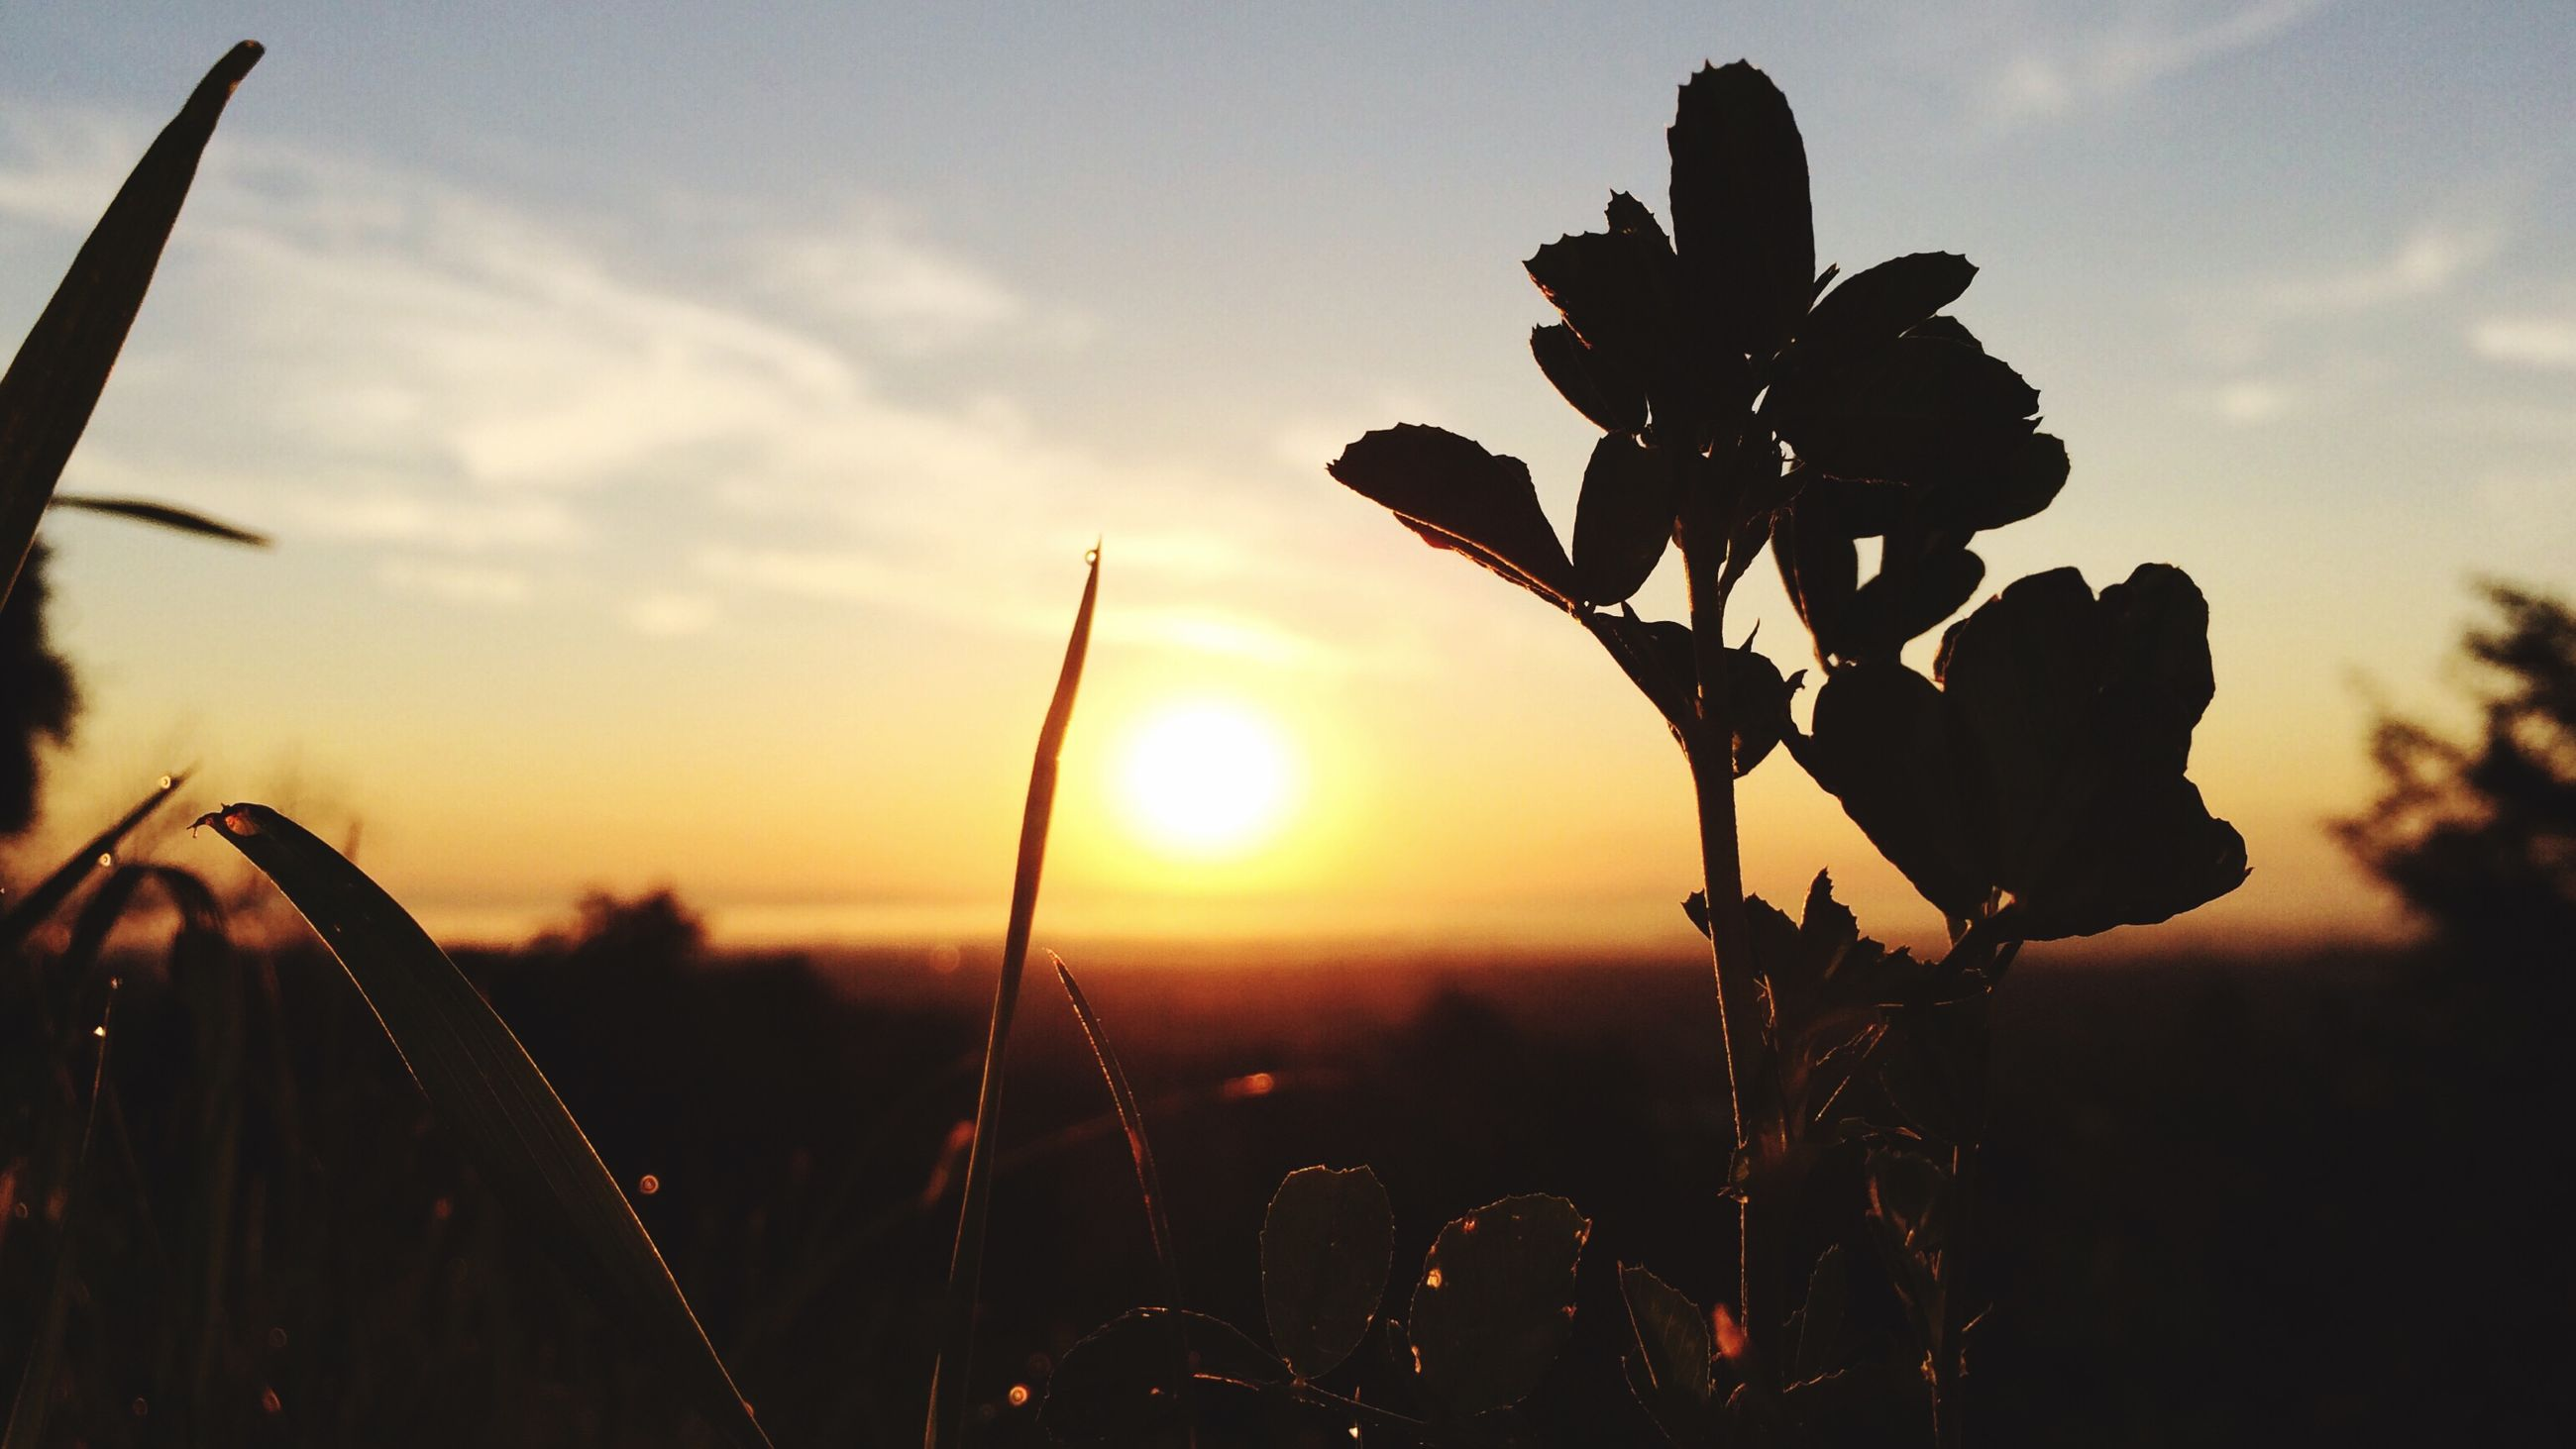 sunset, growth, plant, sky, nature, beauty in nature, close-up, focus on foreground, sun, stem, tranquility, field, leaf, scenics, silhouette, freshness, fragility, orange color, sunlight, tranquil scene